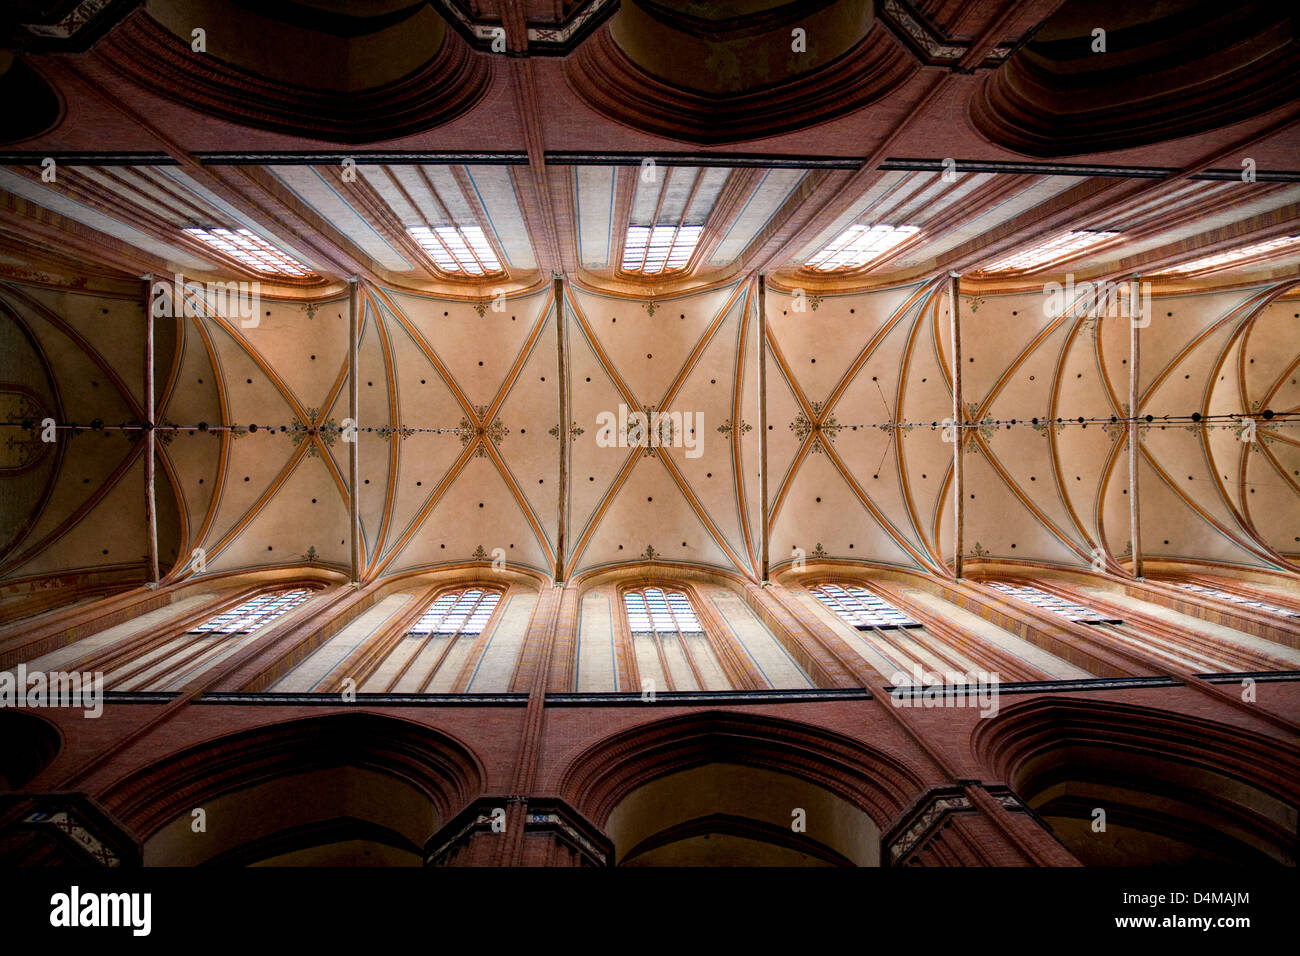 Wismar, Germany, the nave of St. Nicholas Church - Stock Image